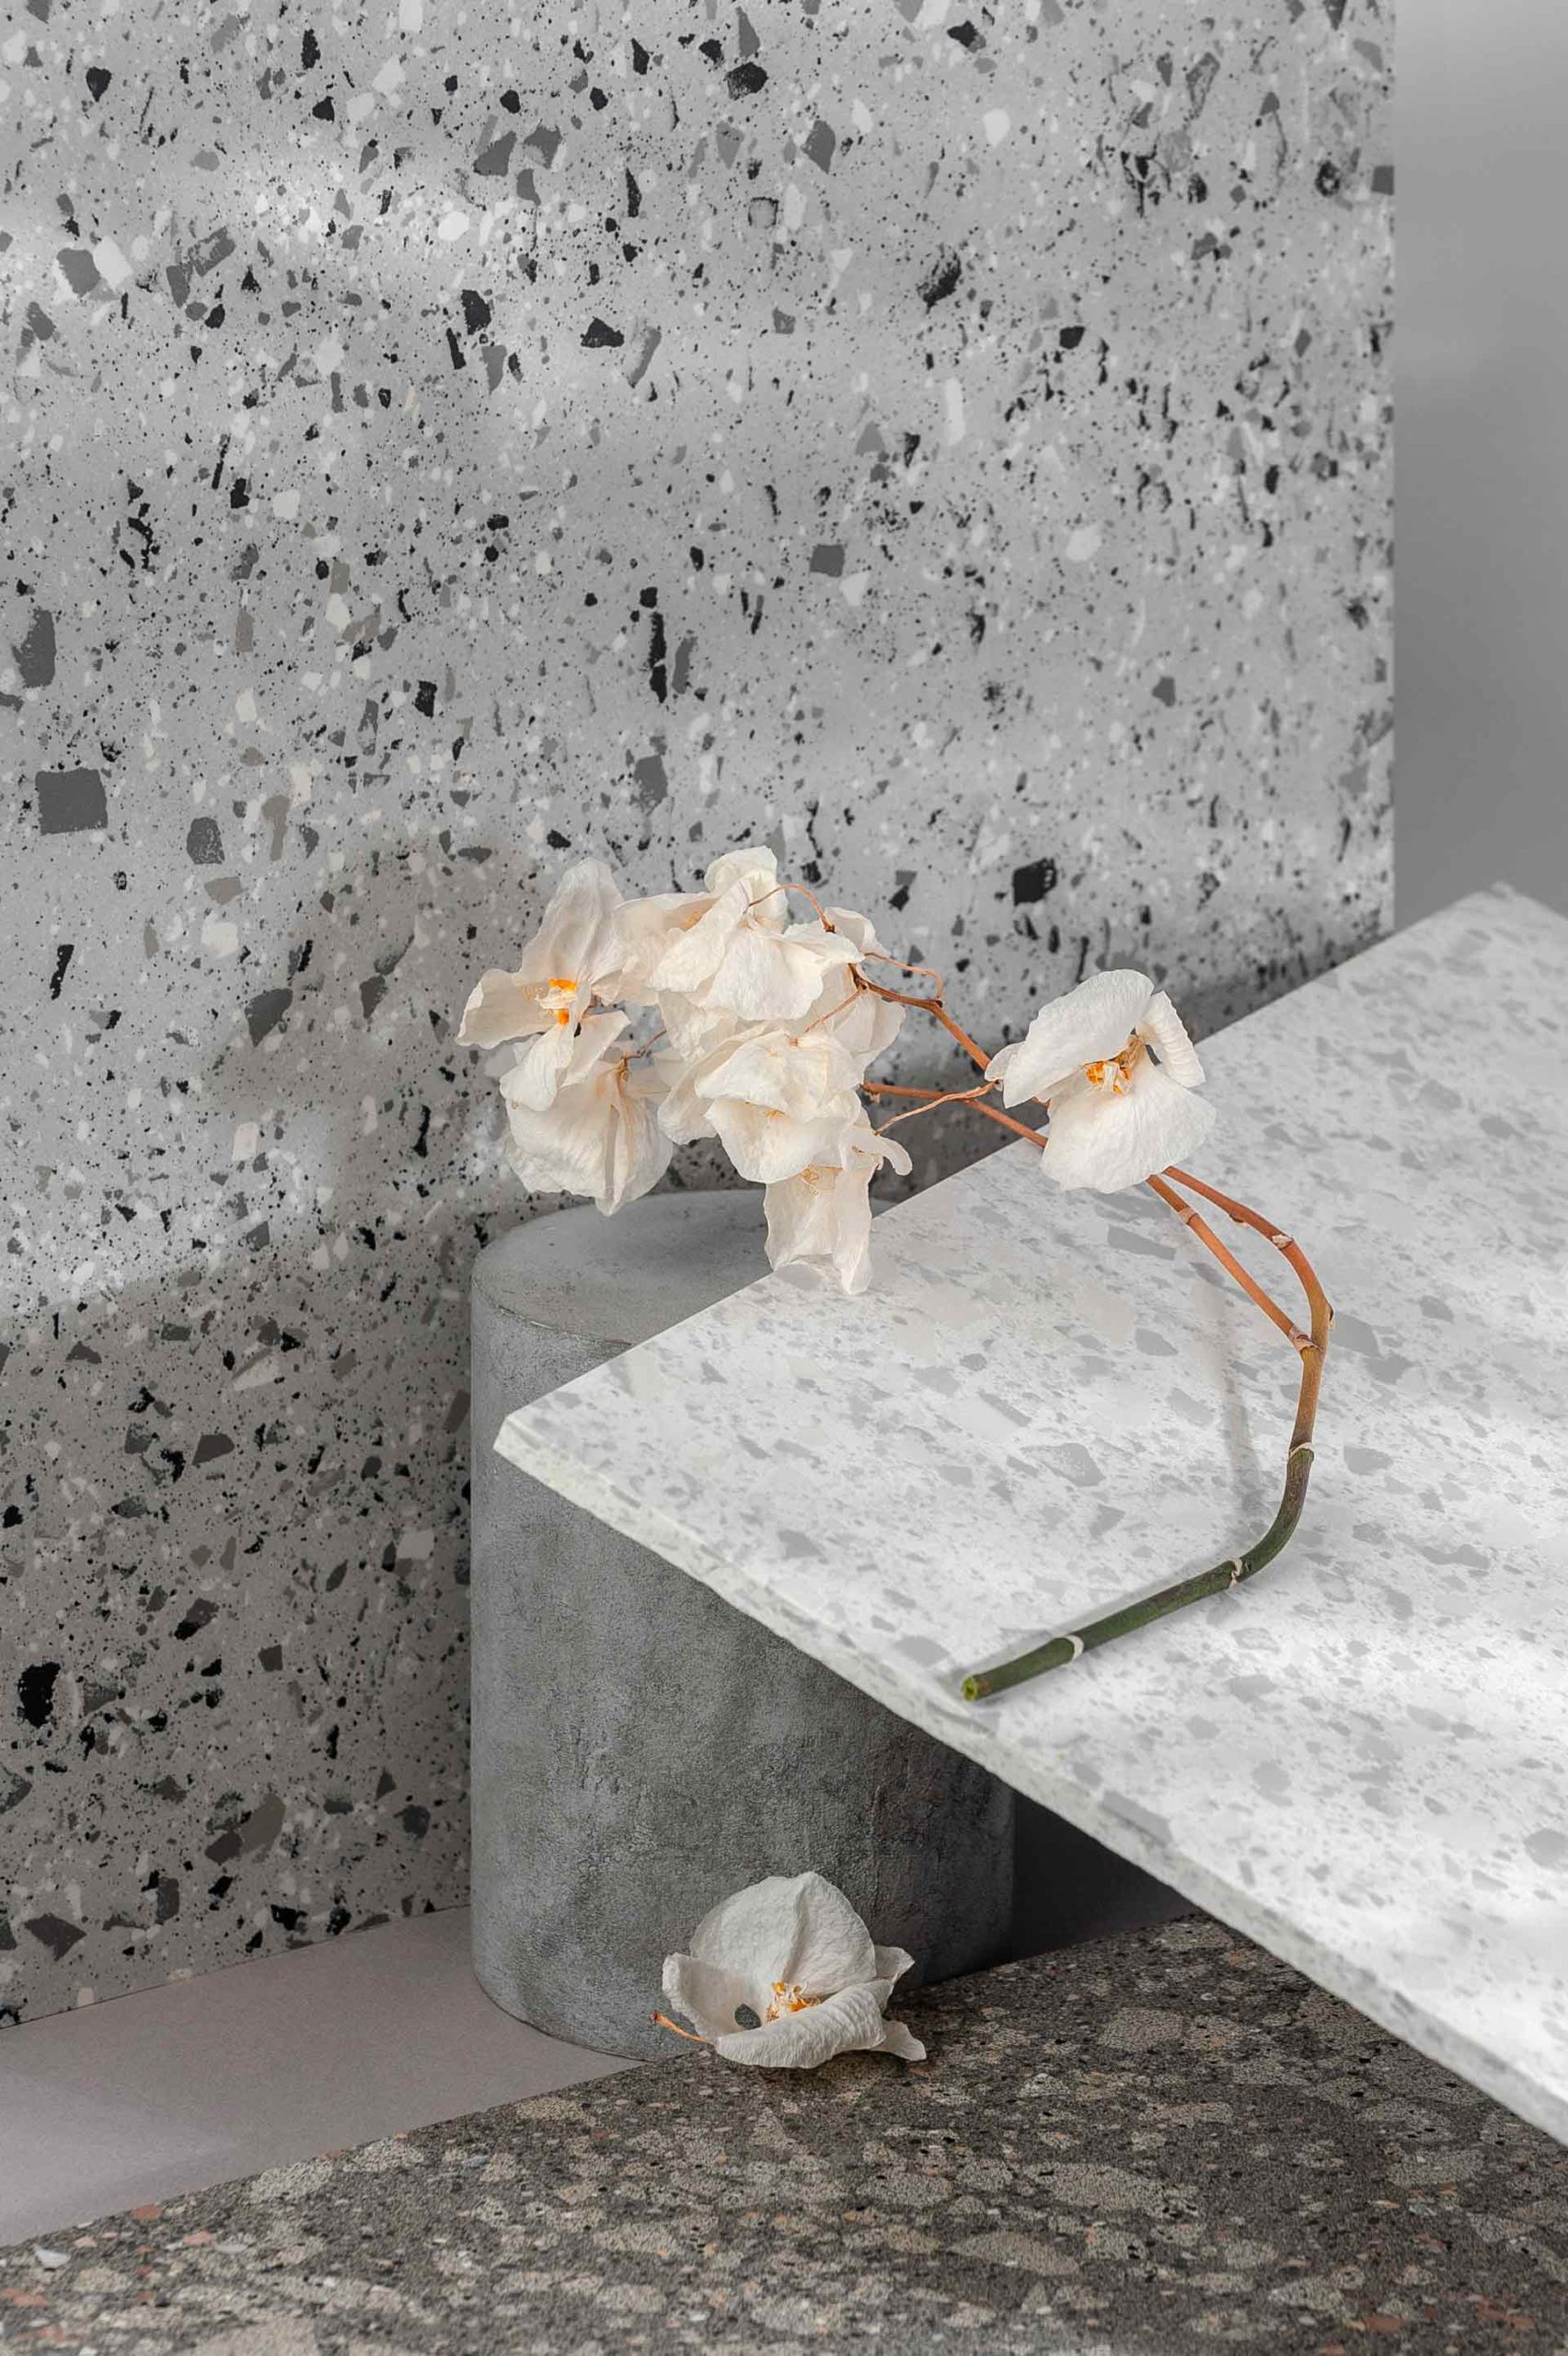 modern-interior-composition-using-various-stone-TBLCP2J-scaled.jpg